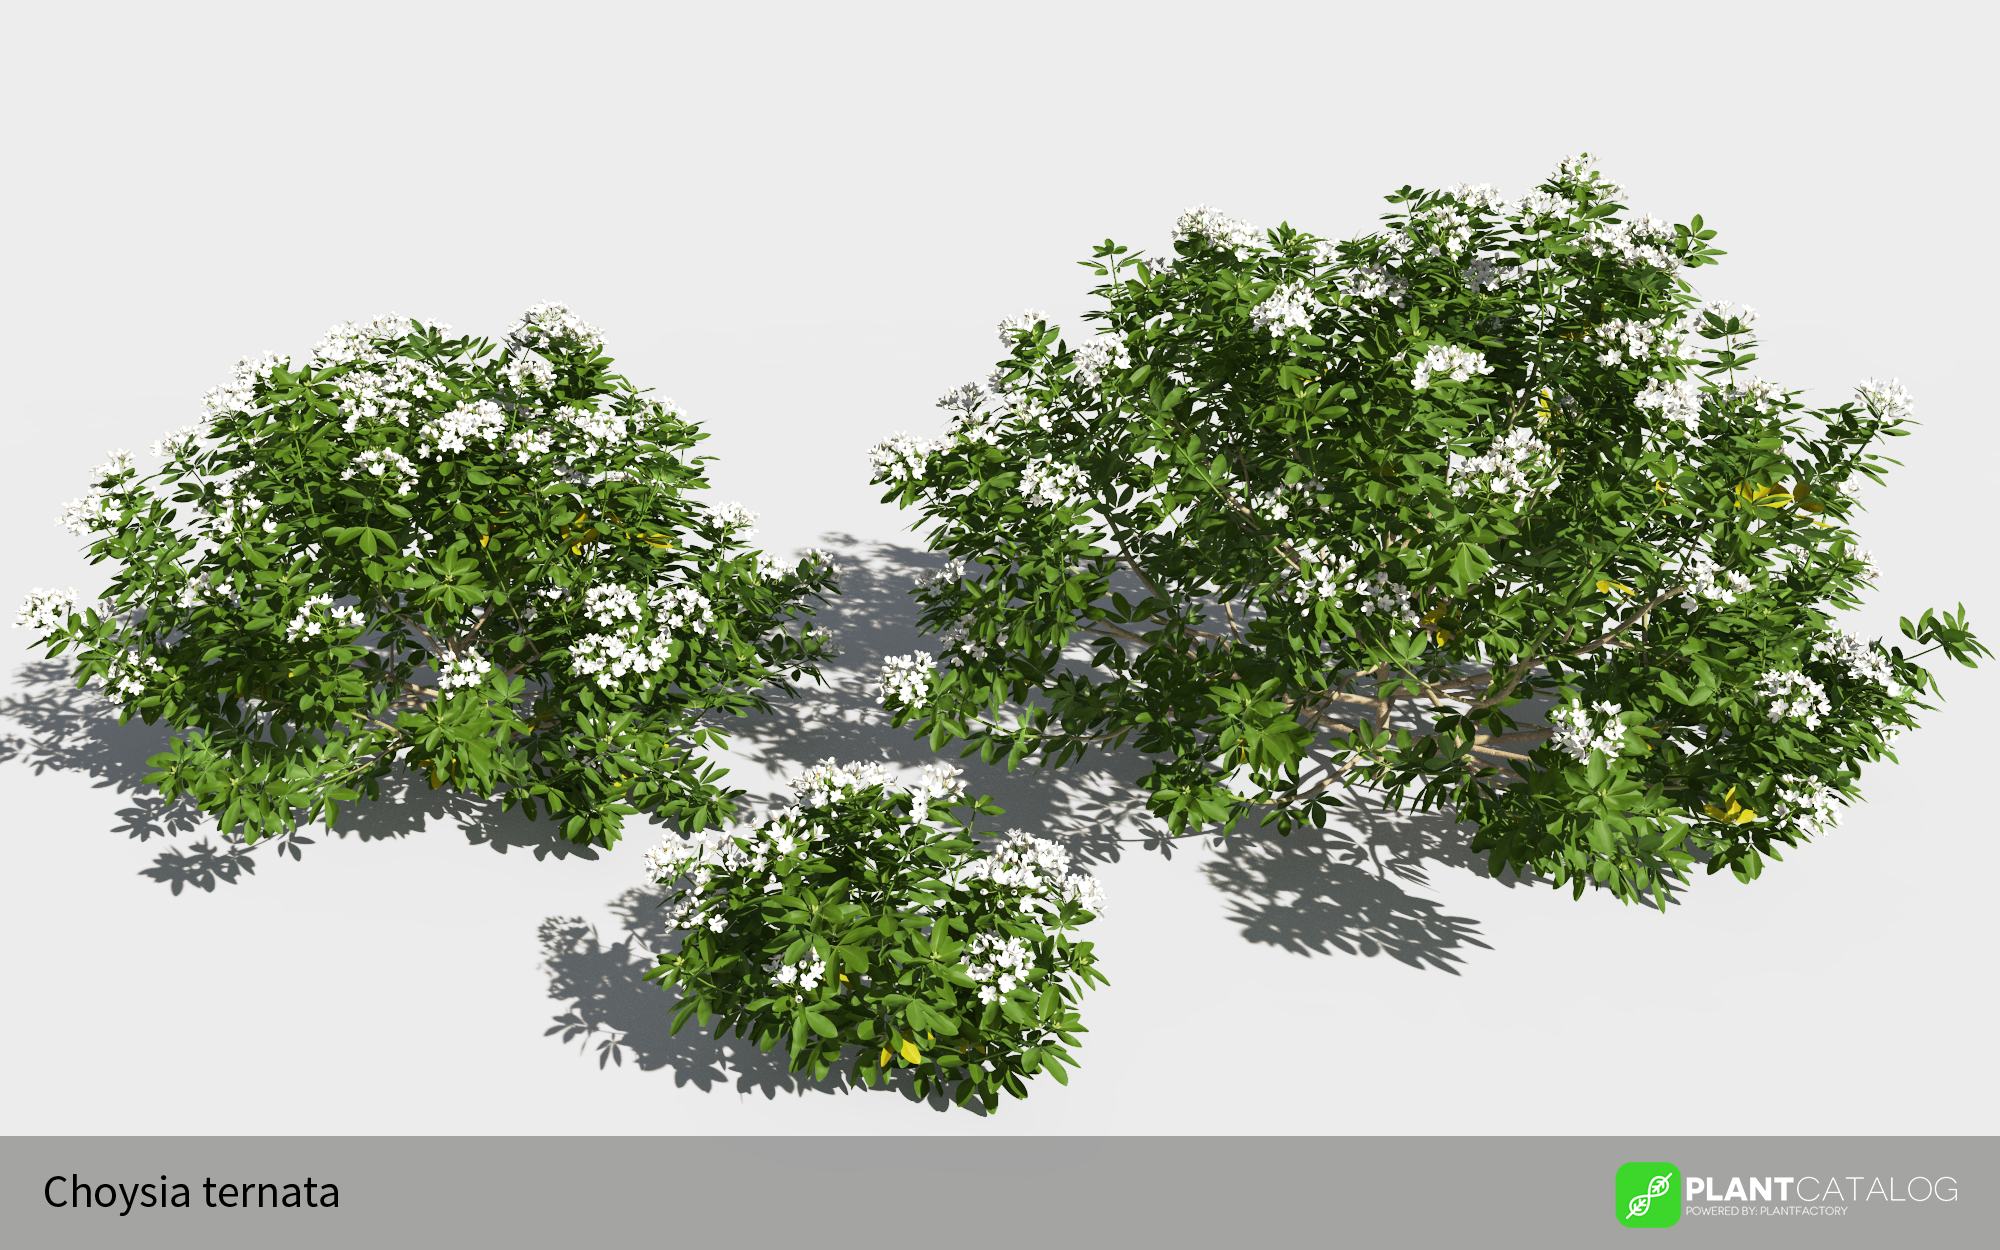 3D model of the Mexican orange blossom - Choisya ternata - from the PlantCatalog, rendered in VUE